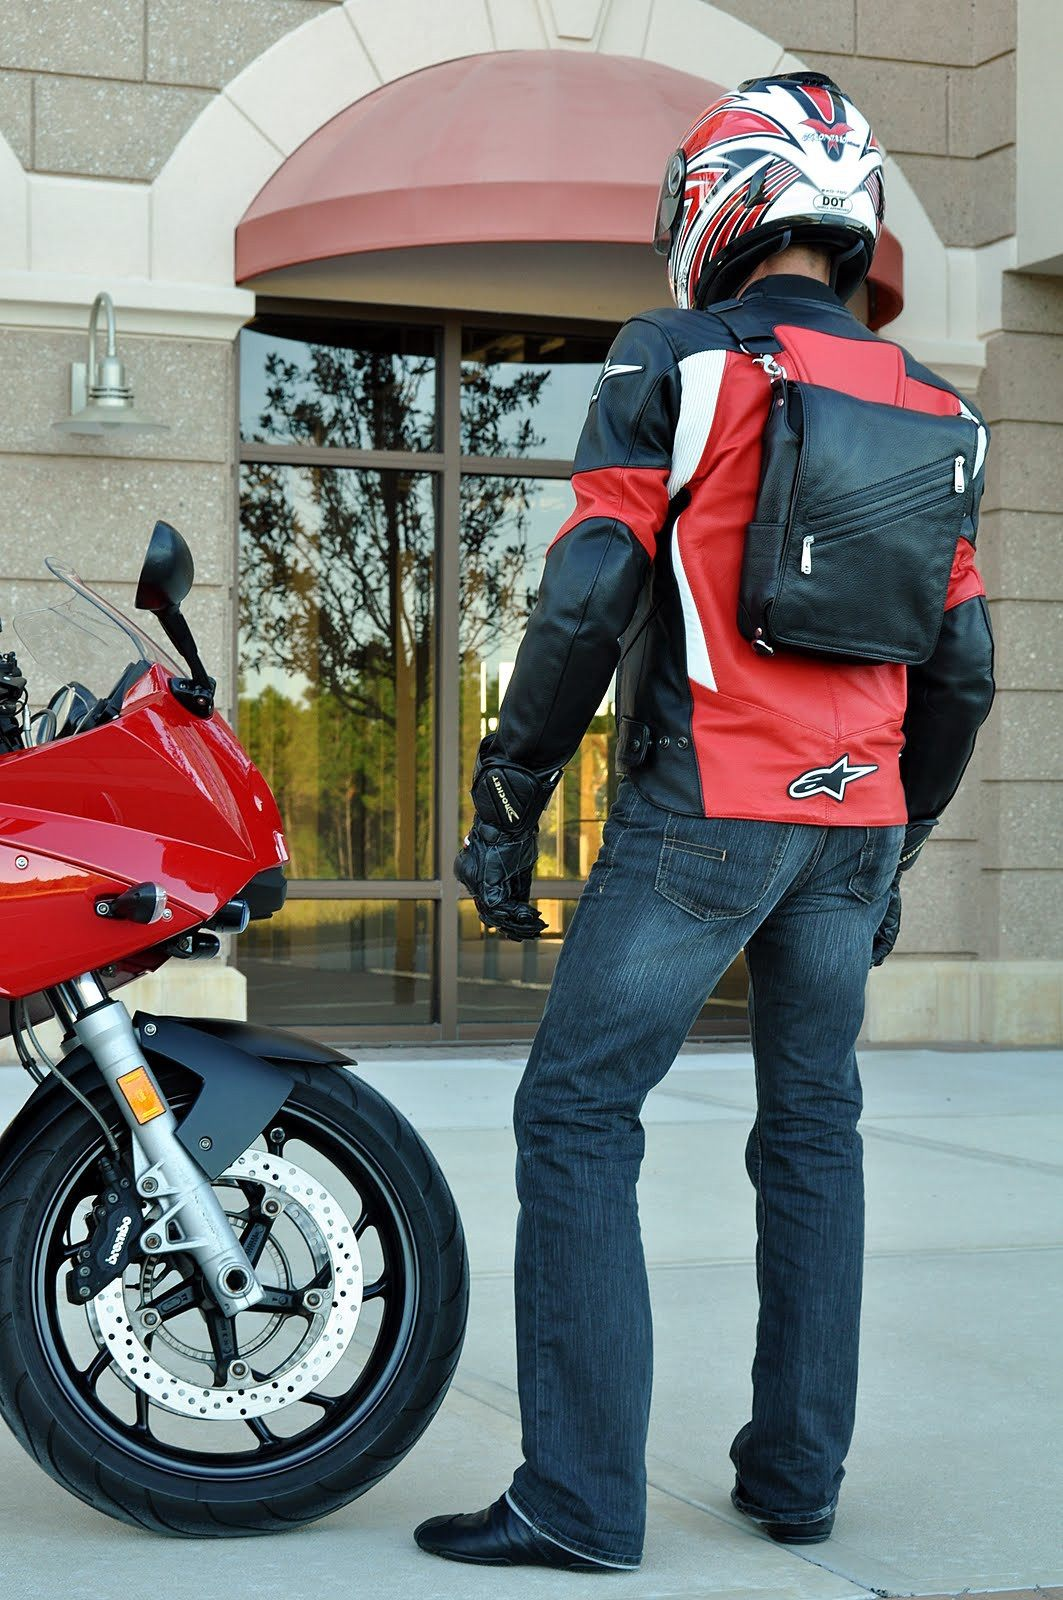 Your iPad is safe, and your Platforma messenger bag comfortably rests on your back.